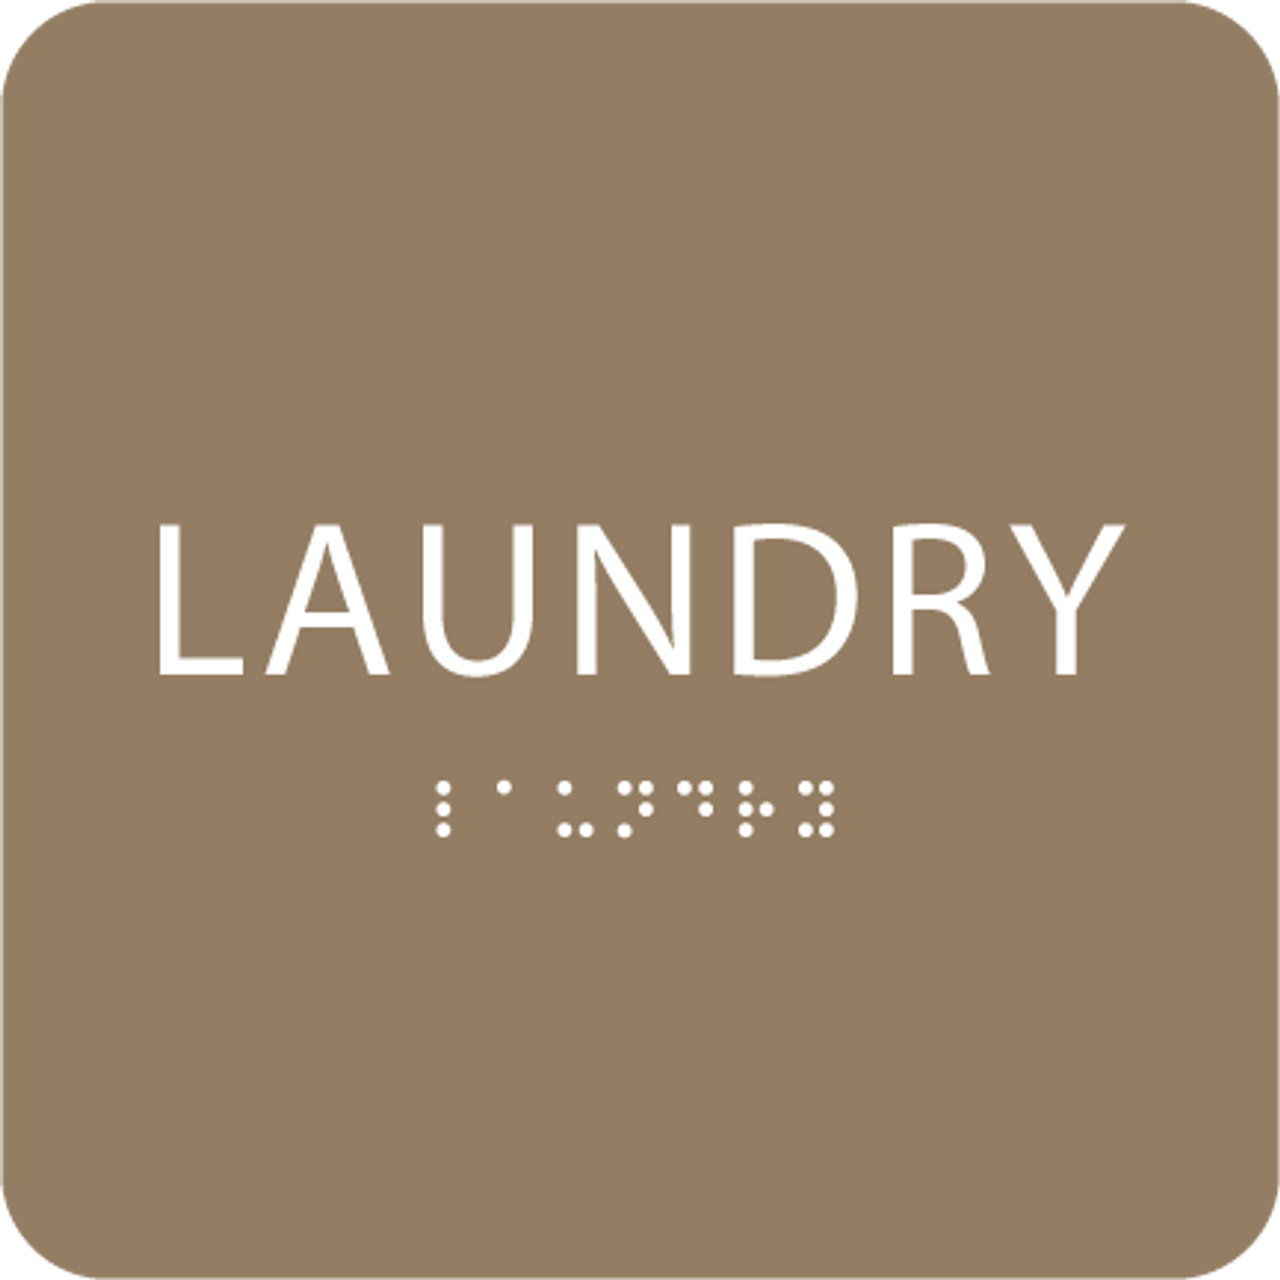 Brown Laundry ADA Sign